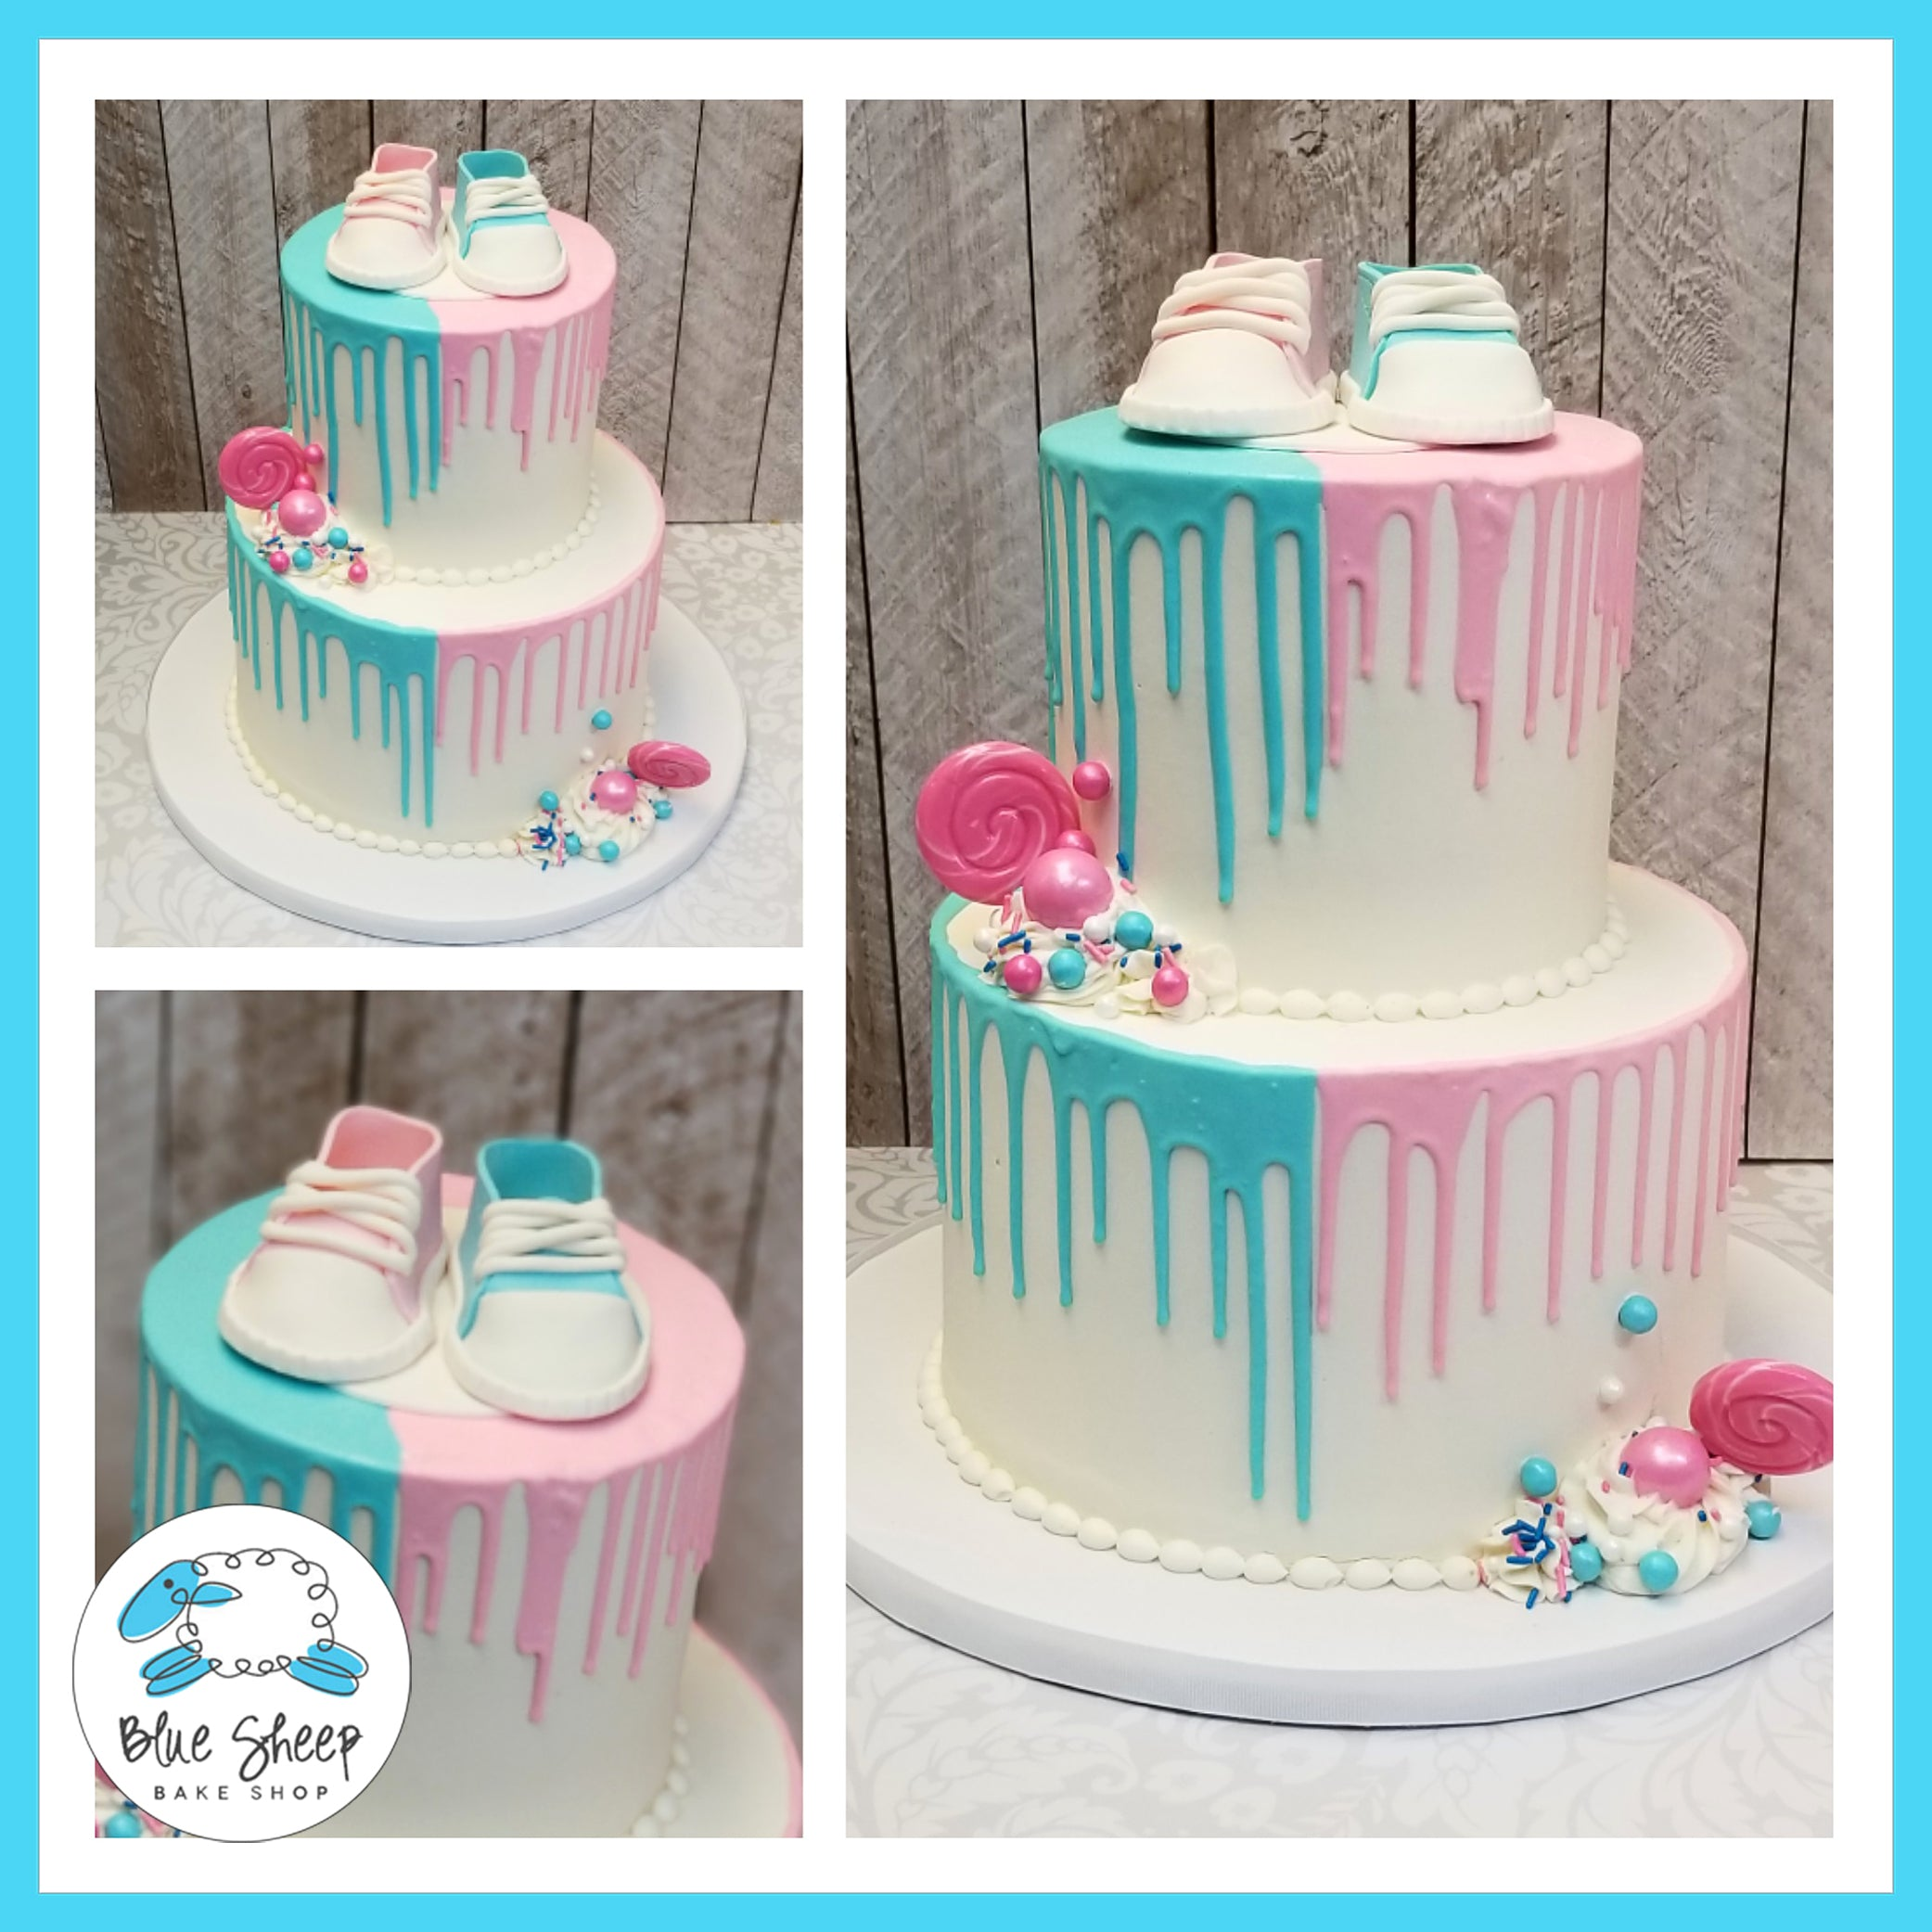 Pink And Blue Baby Shower Cake With Baby Sneakers Nj Blue Sheep Bake Shop